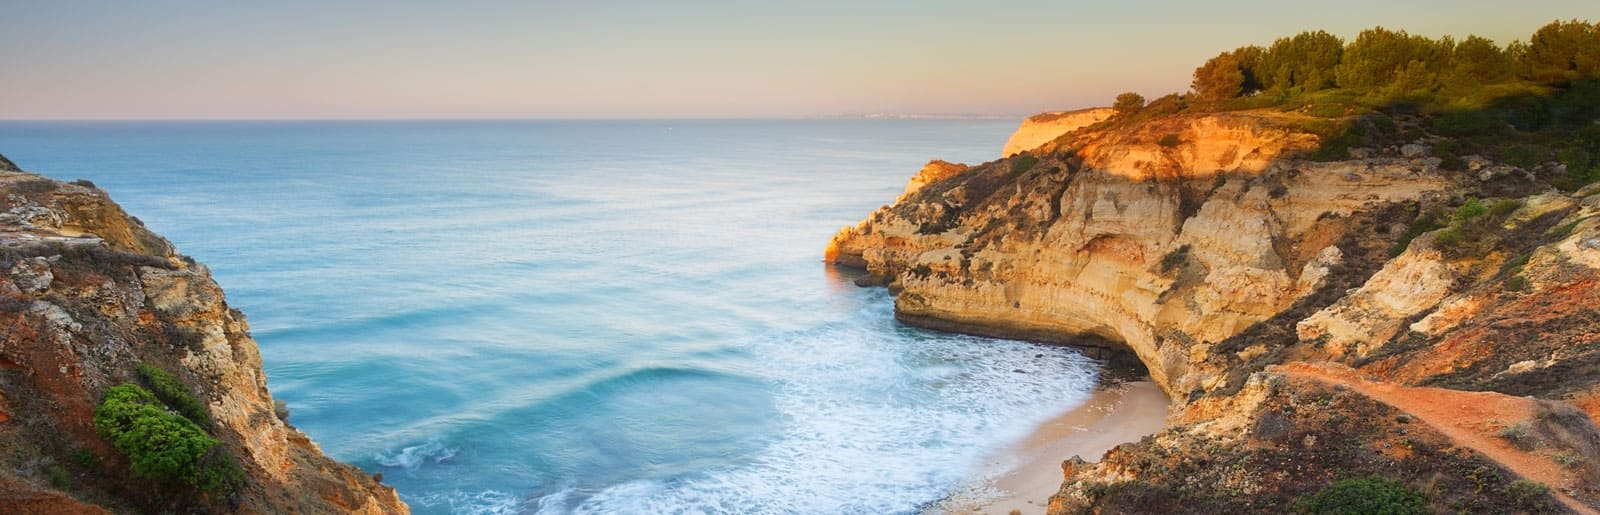 be live hotels in algarve portugal